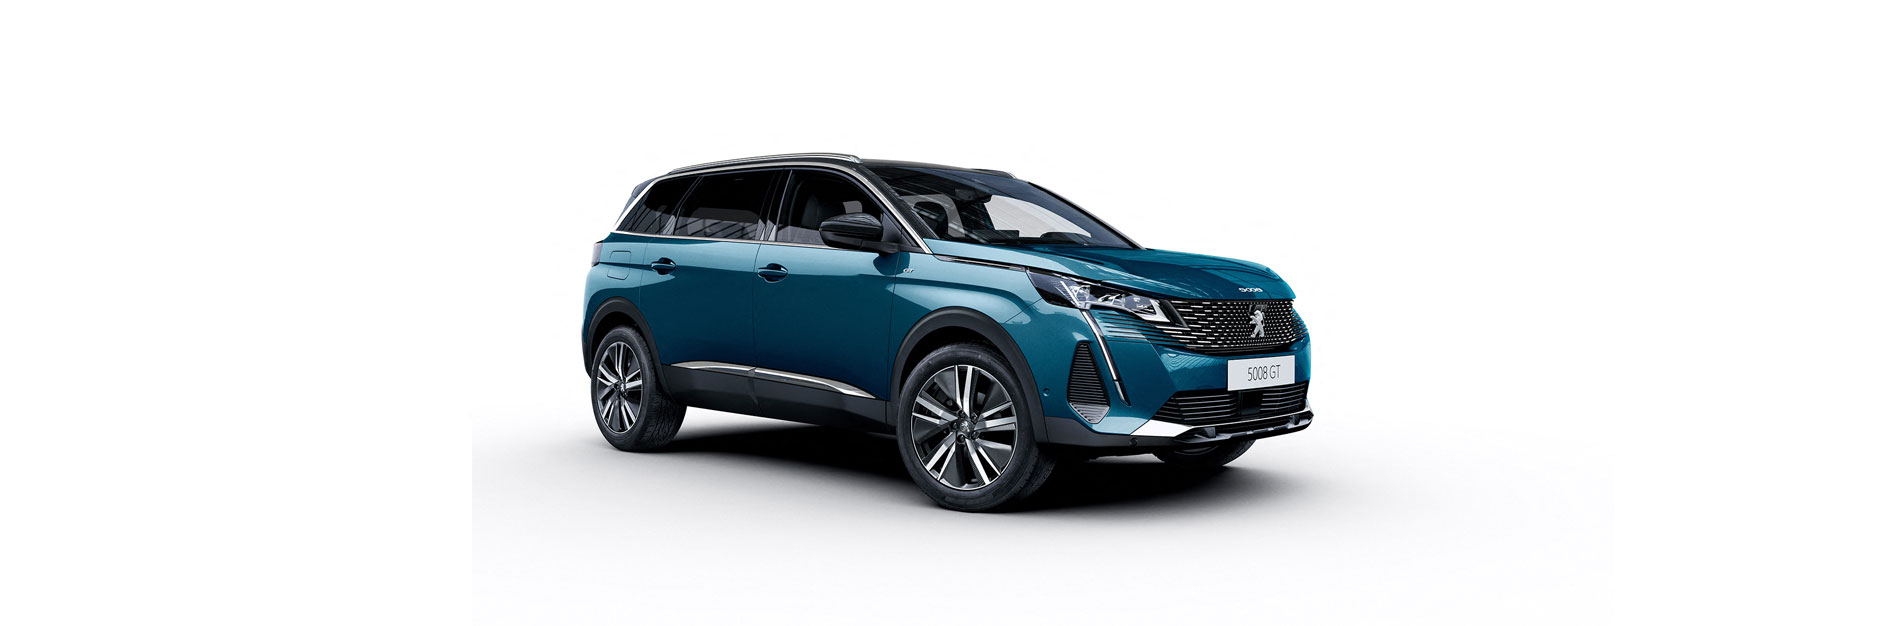 peugeot-new-5008-suv-new-car-sales-head